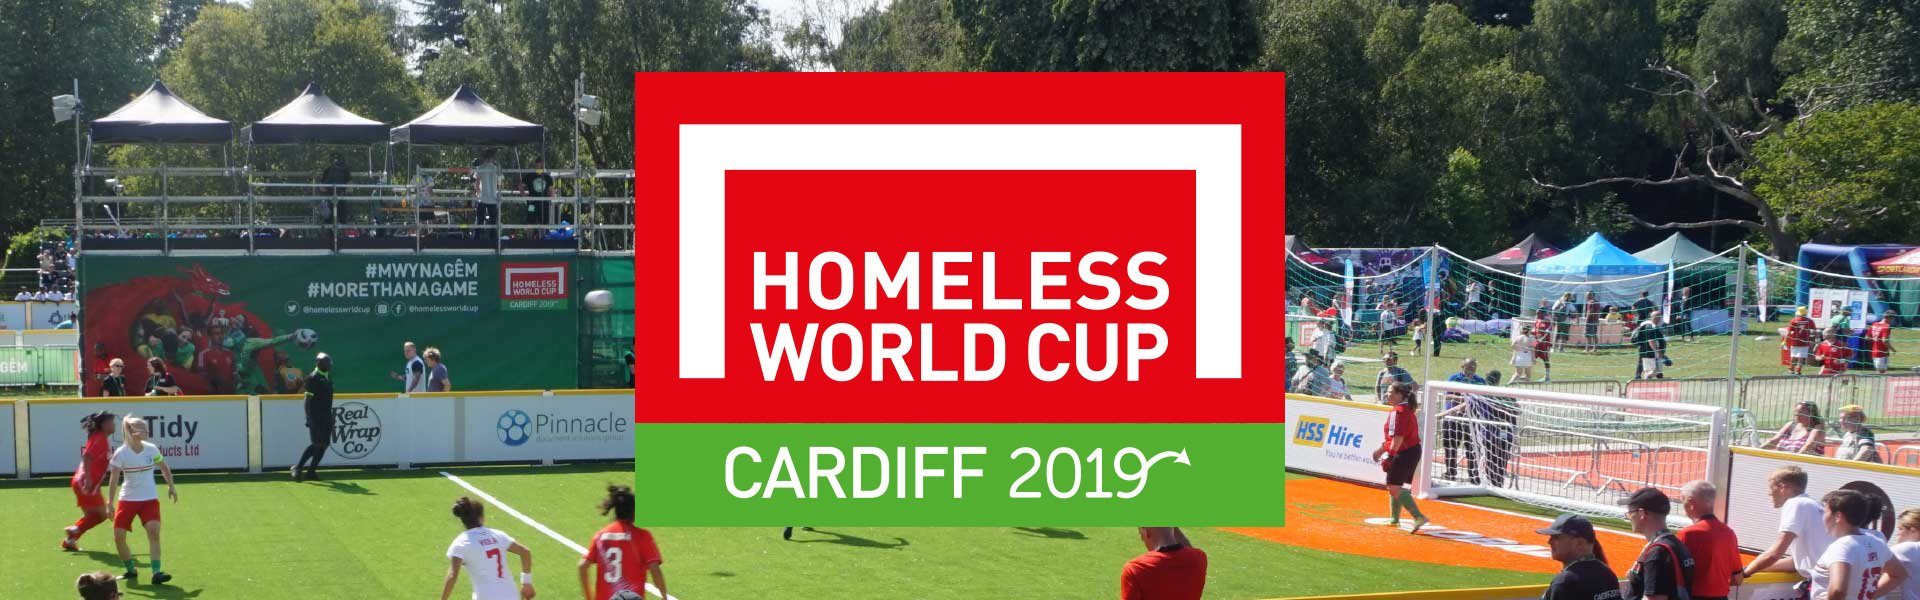 Homeless World Cup Cardiff logo